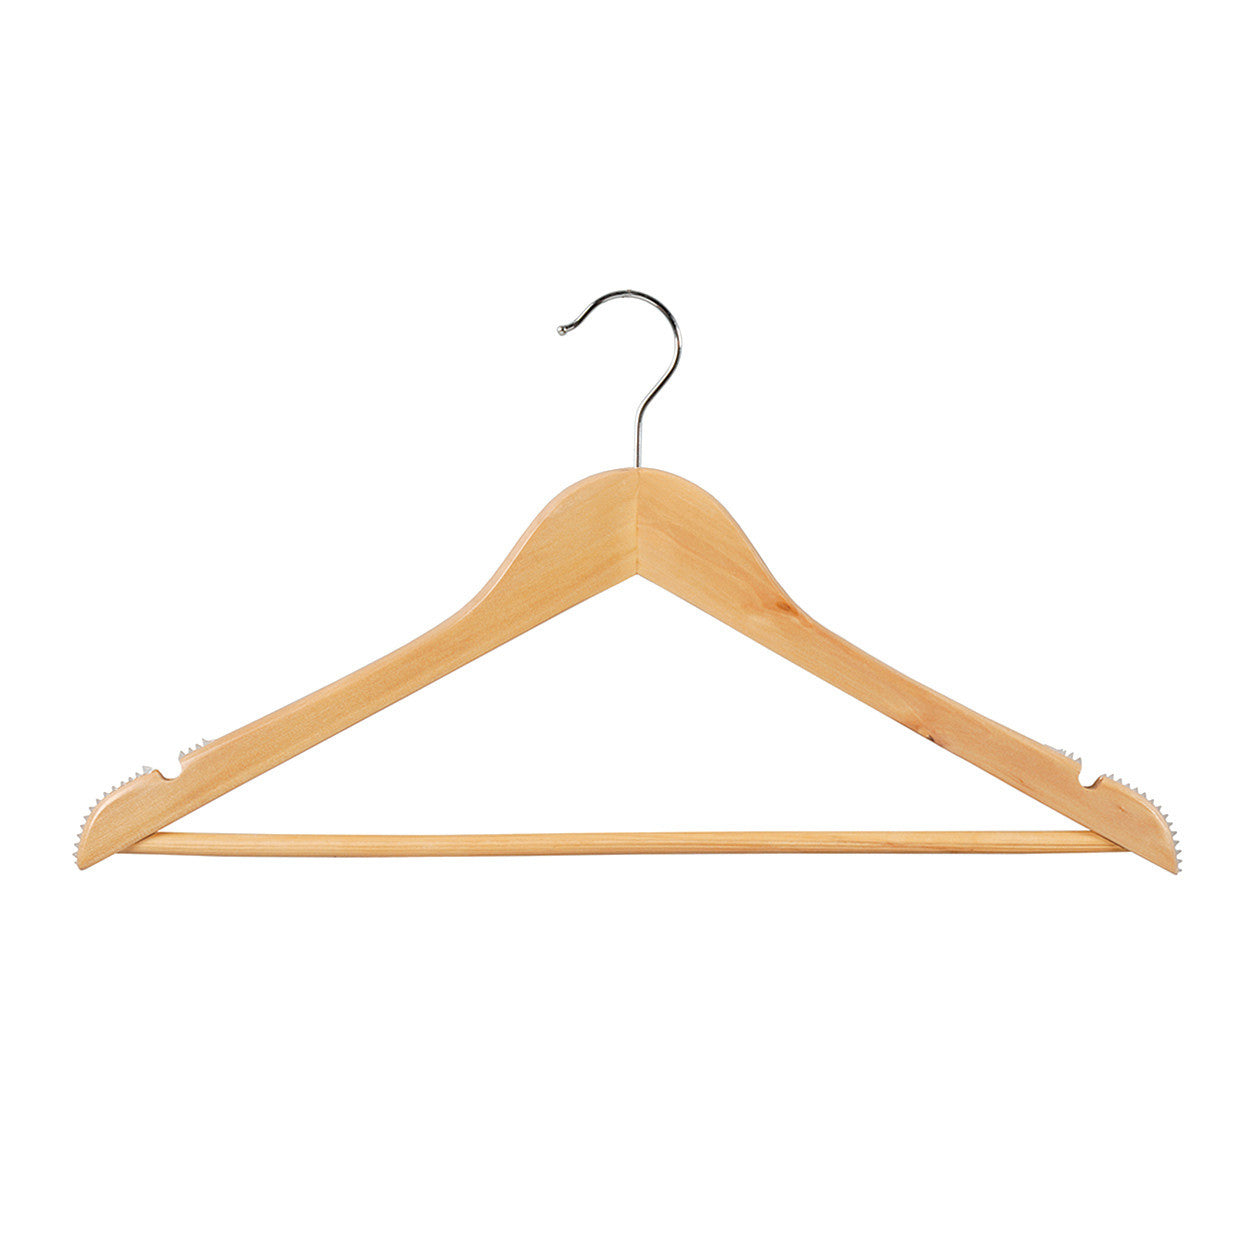 Beech Wooden hanger with notches, ribs & rail 440 W x 14 mm Thick (Bundle of 10) H2650BH-10